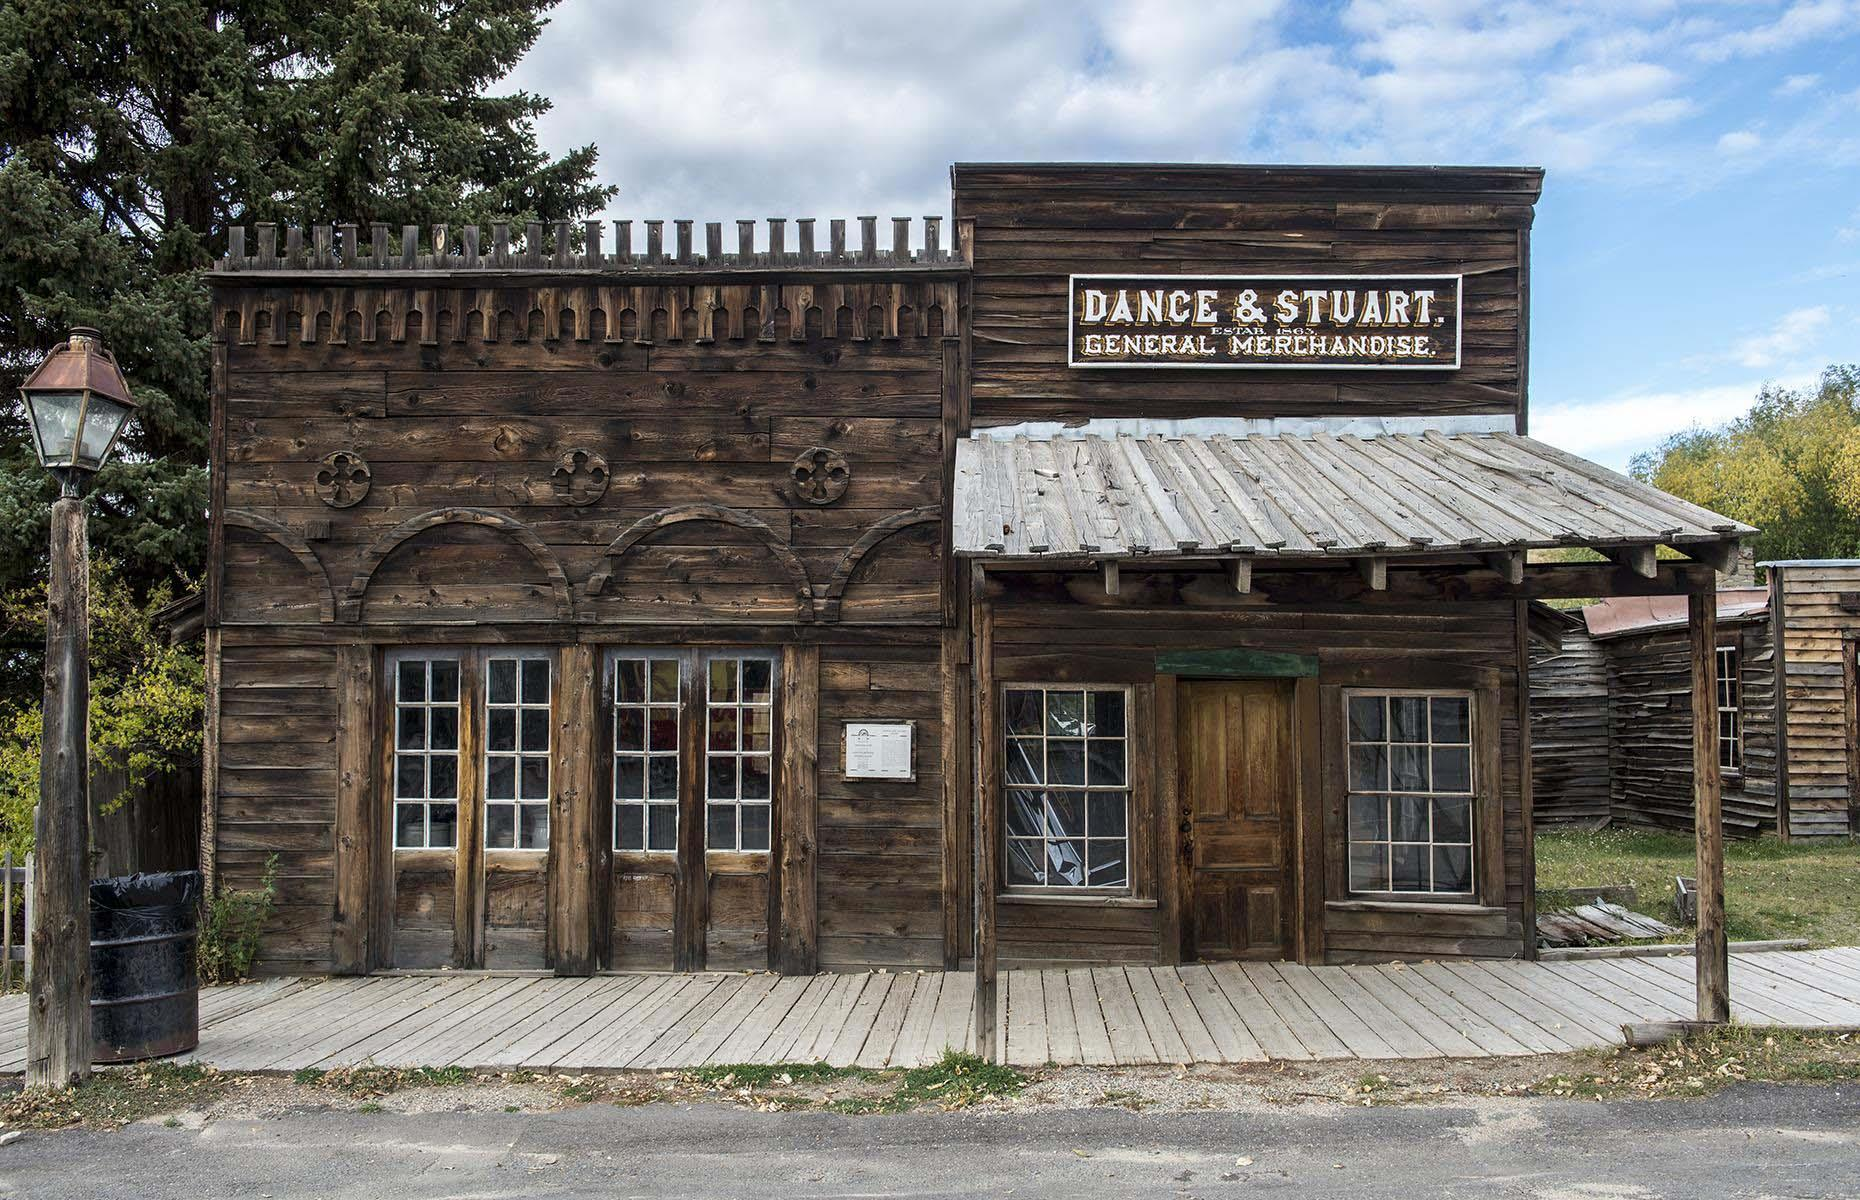 Slide 4 of 46: Today, Virginia City is a ghost town very much alive. This is thanks to Charles and Sue Bovey, who bought the town bit by bit in the 1940s to restore and preserve its original buildings. Currently, Virginia City is open for visitors with some COVID-19 measures in place.